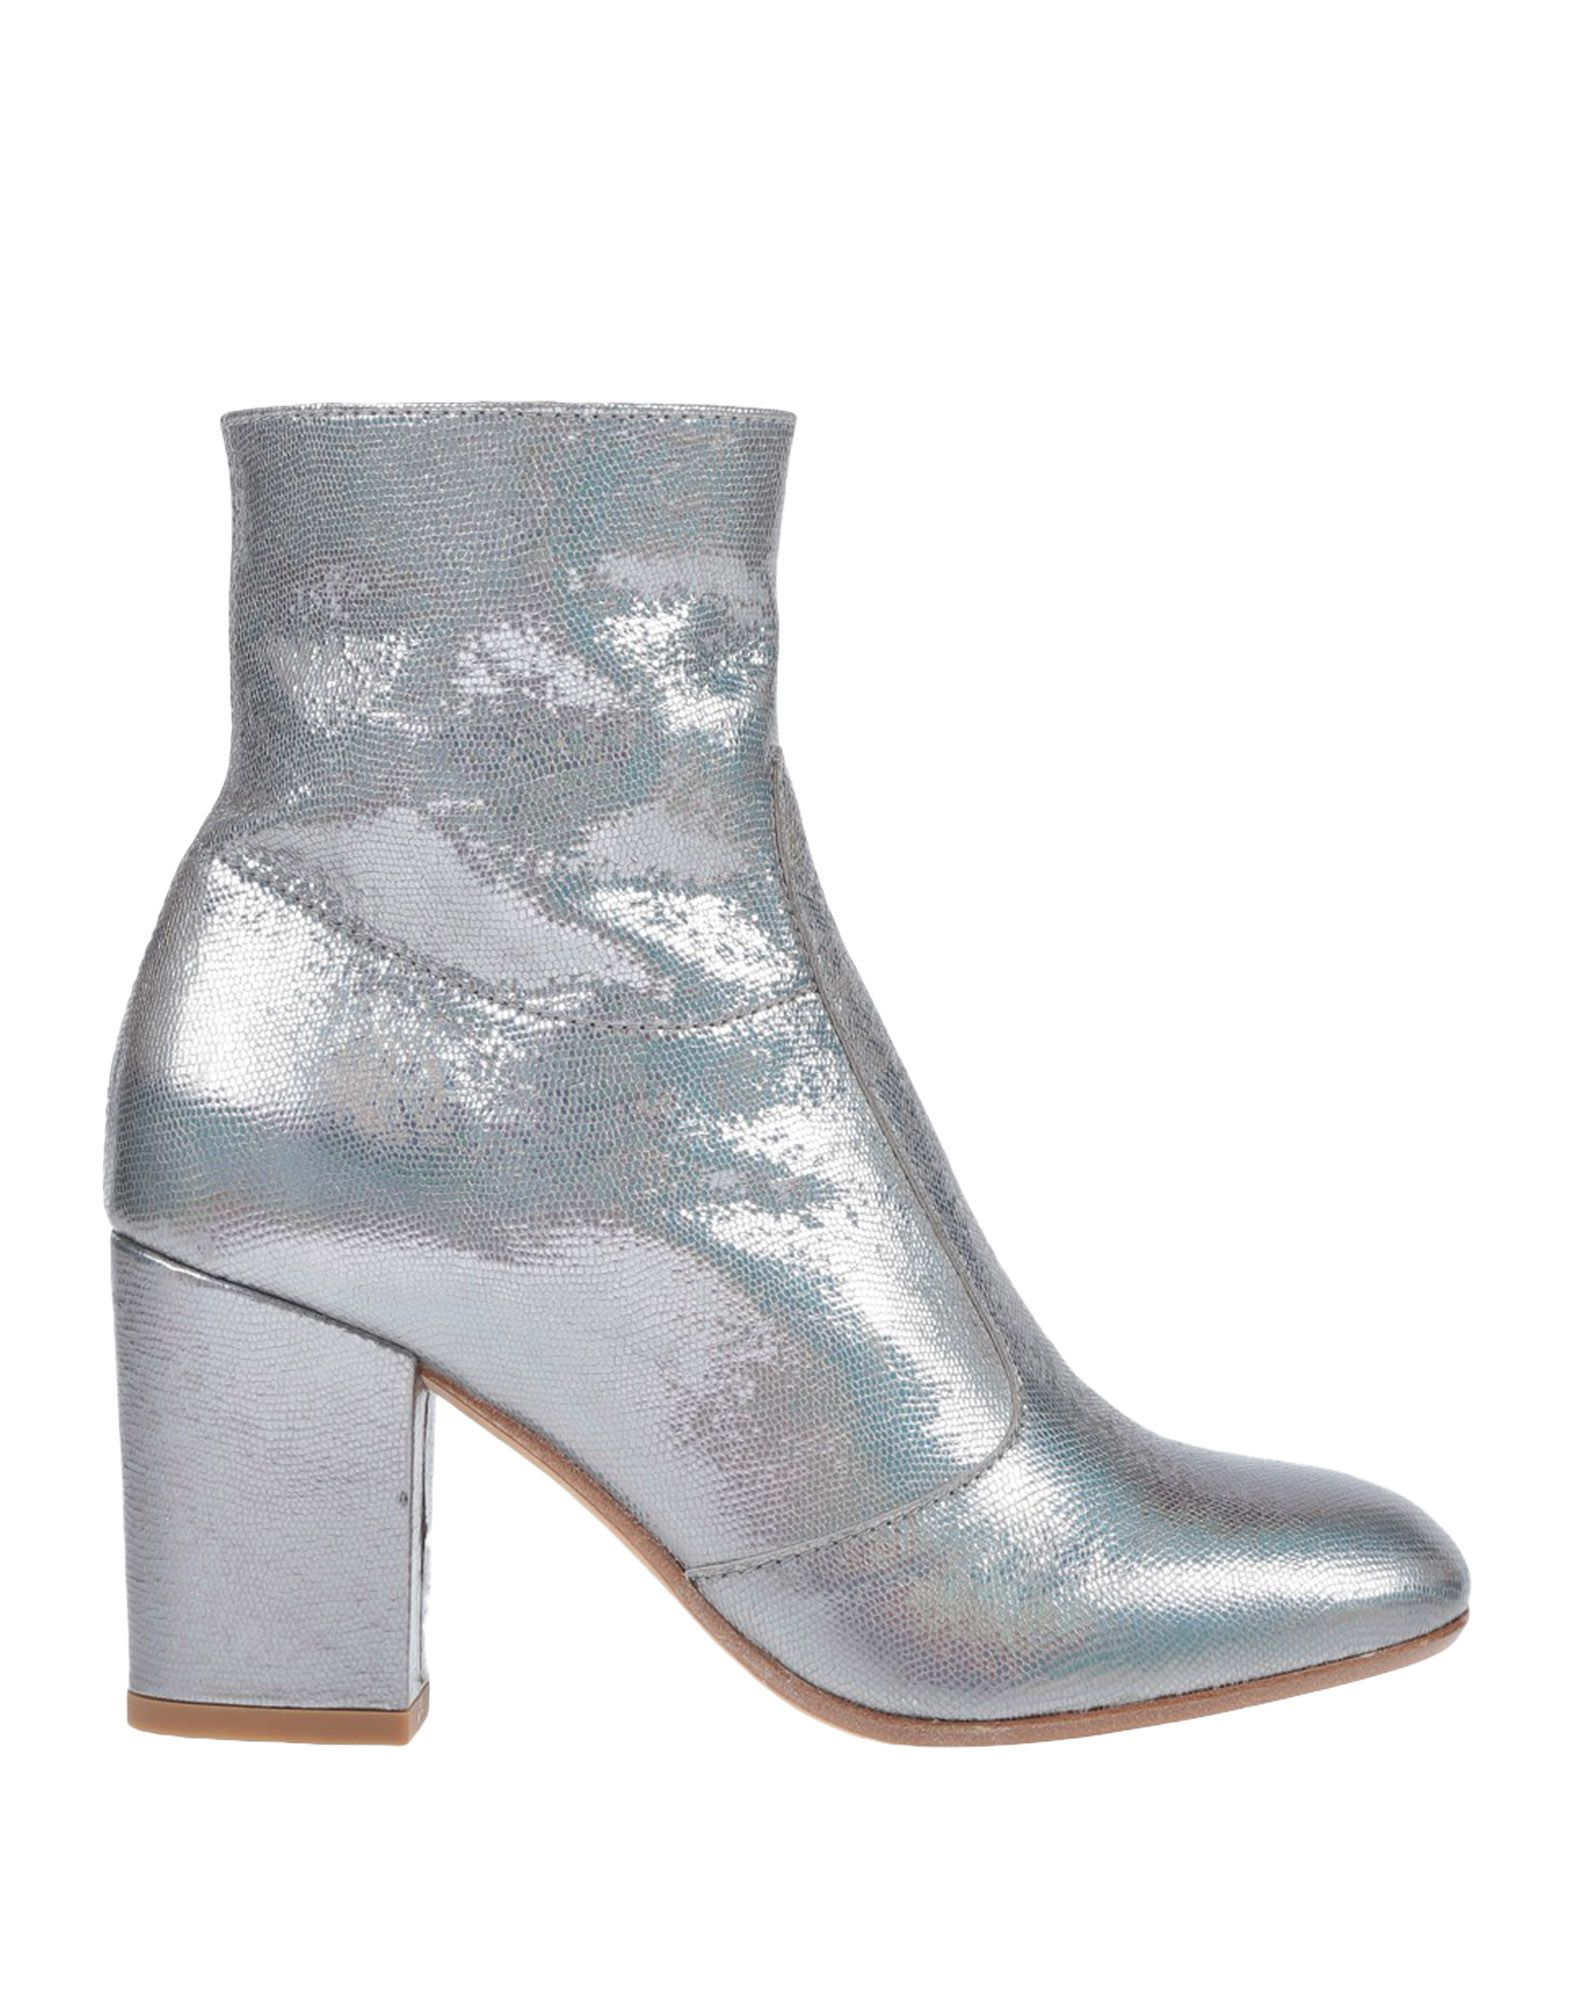 LEMARÉ Ankle Boot in Silver